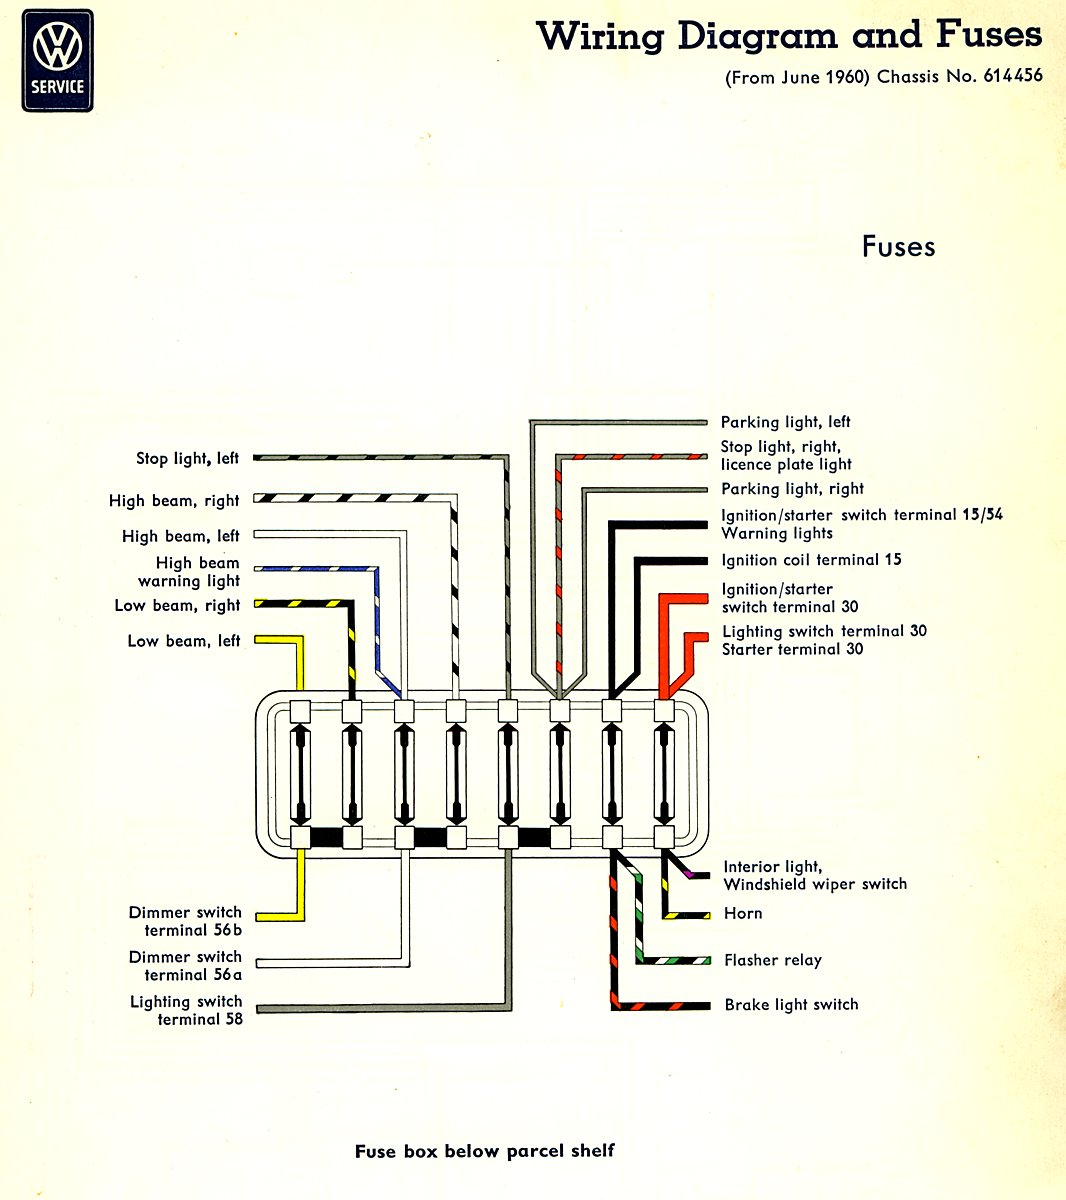 Type 2 Wiring Diagrams 1995 Ford Bronco Fuse Box Diagram 1960 Insert 1961 Idiot Lights Highlight